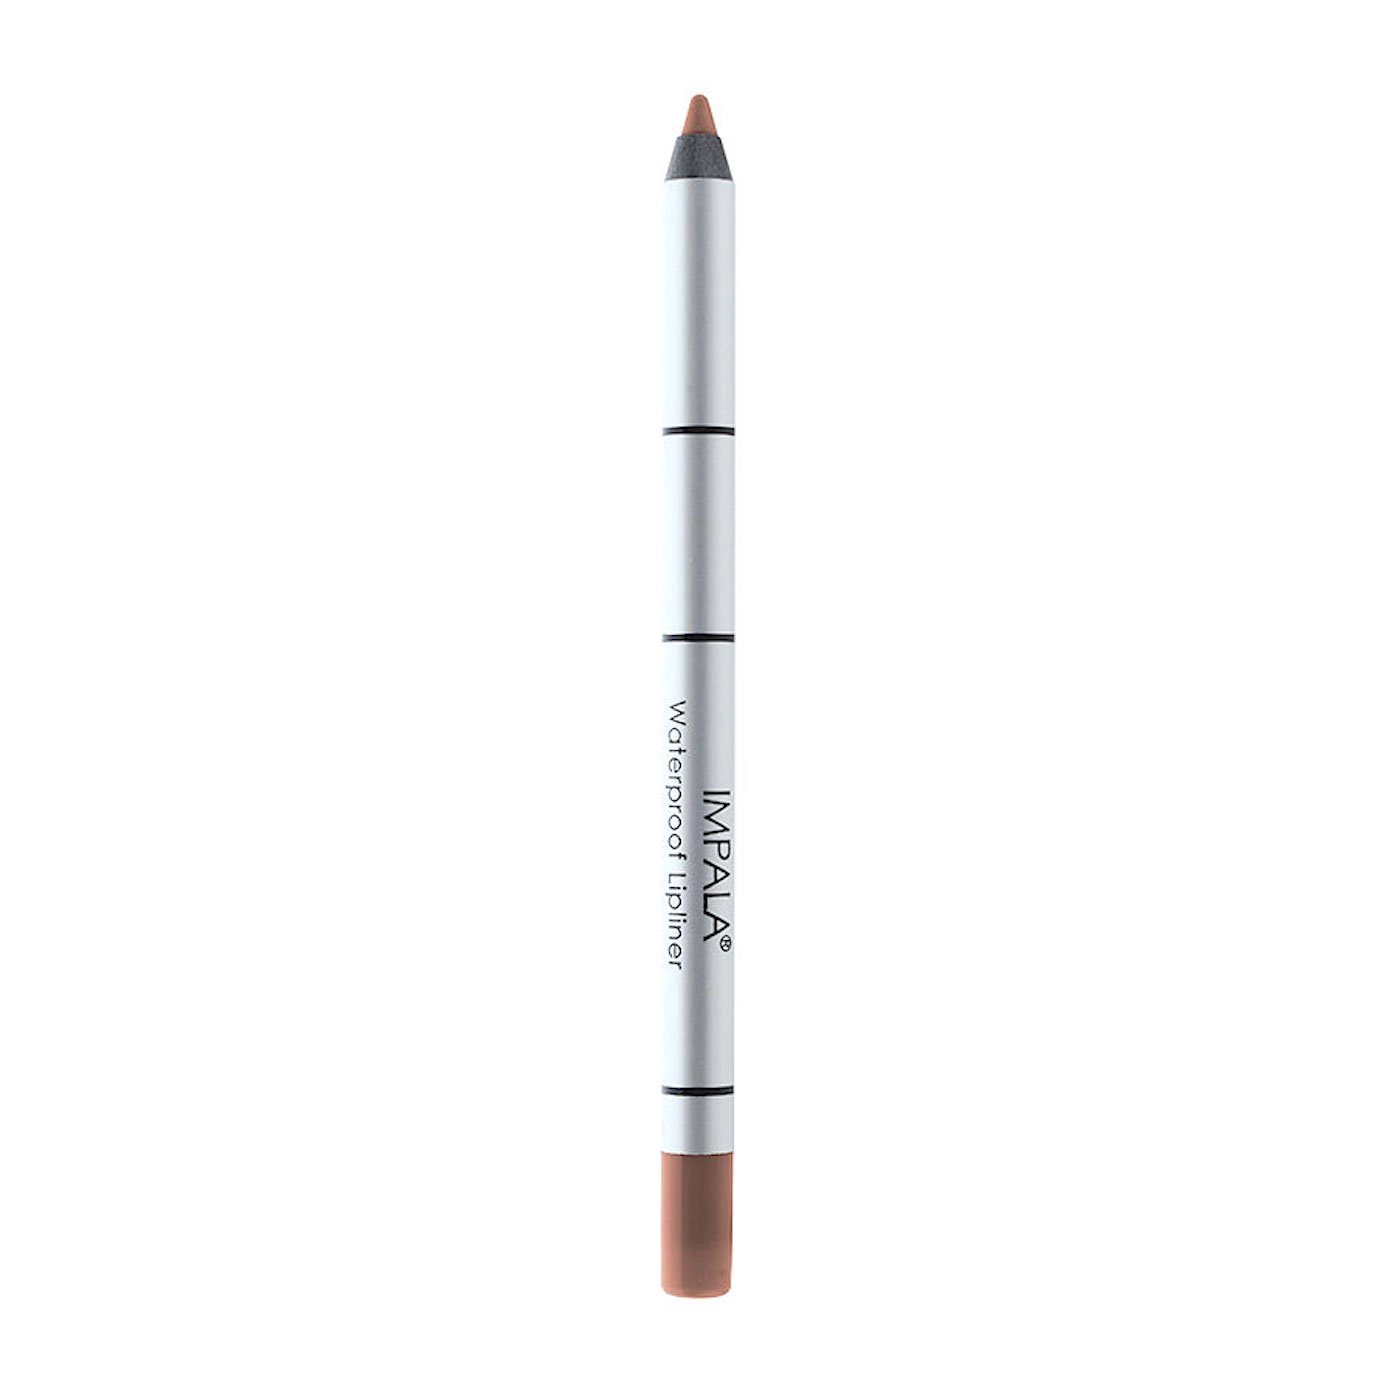 Impala Lip Pencil 204 Dark Berry Creamy Waterproof Long-Wear